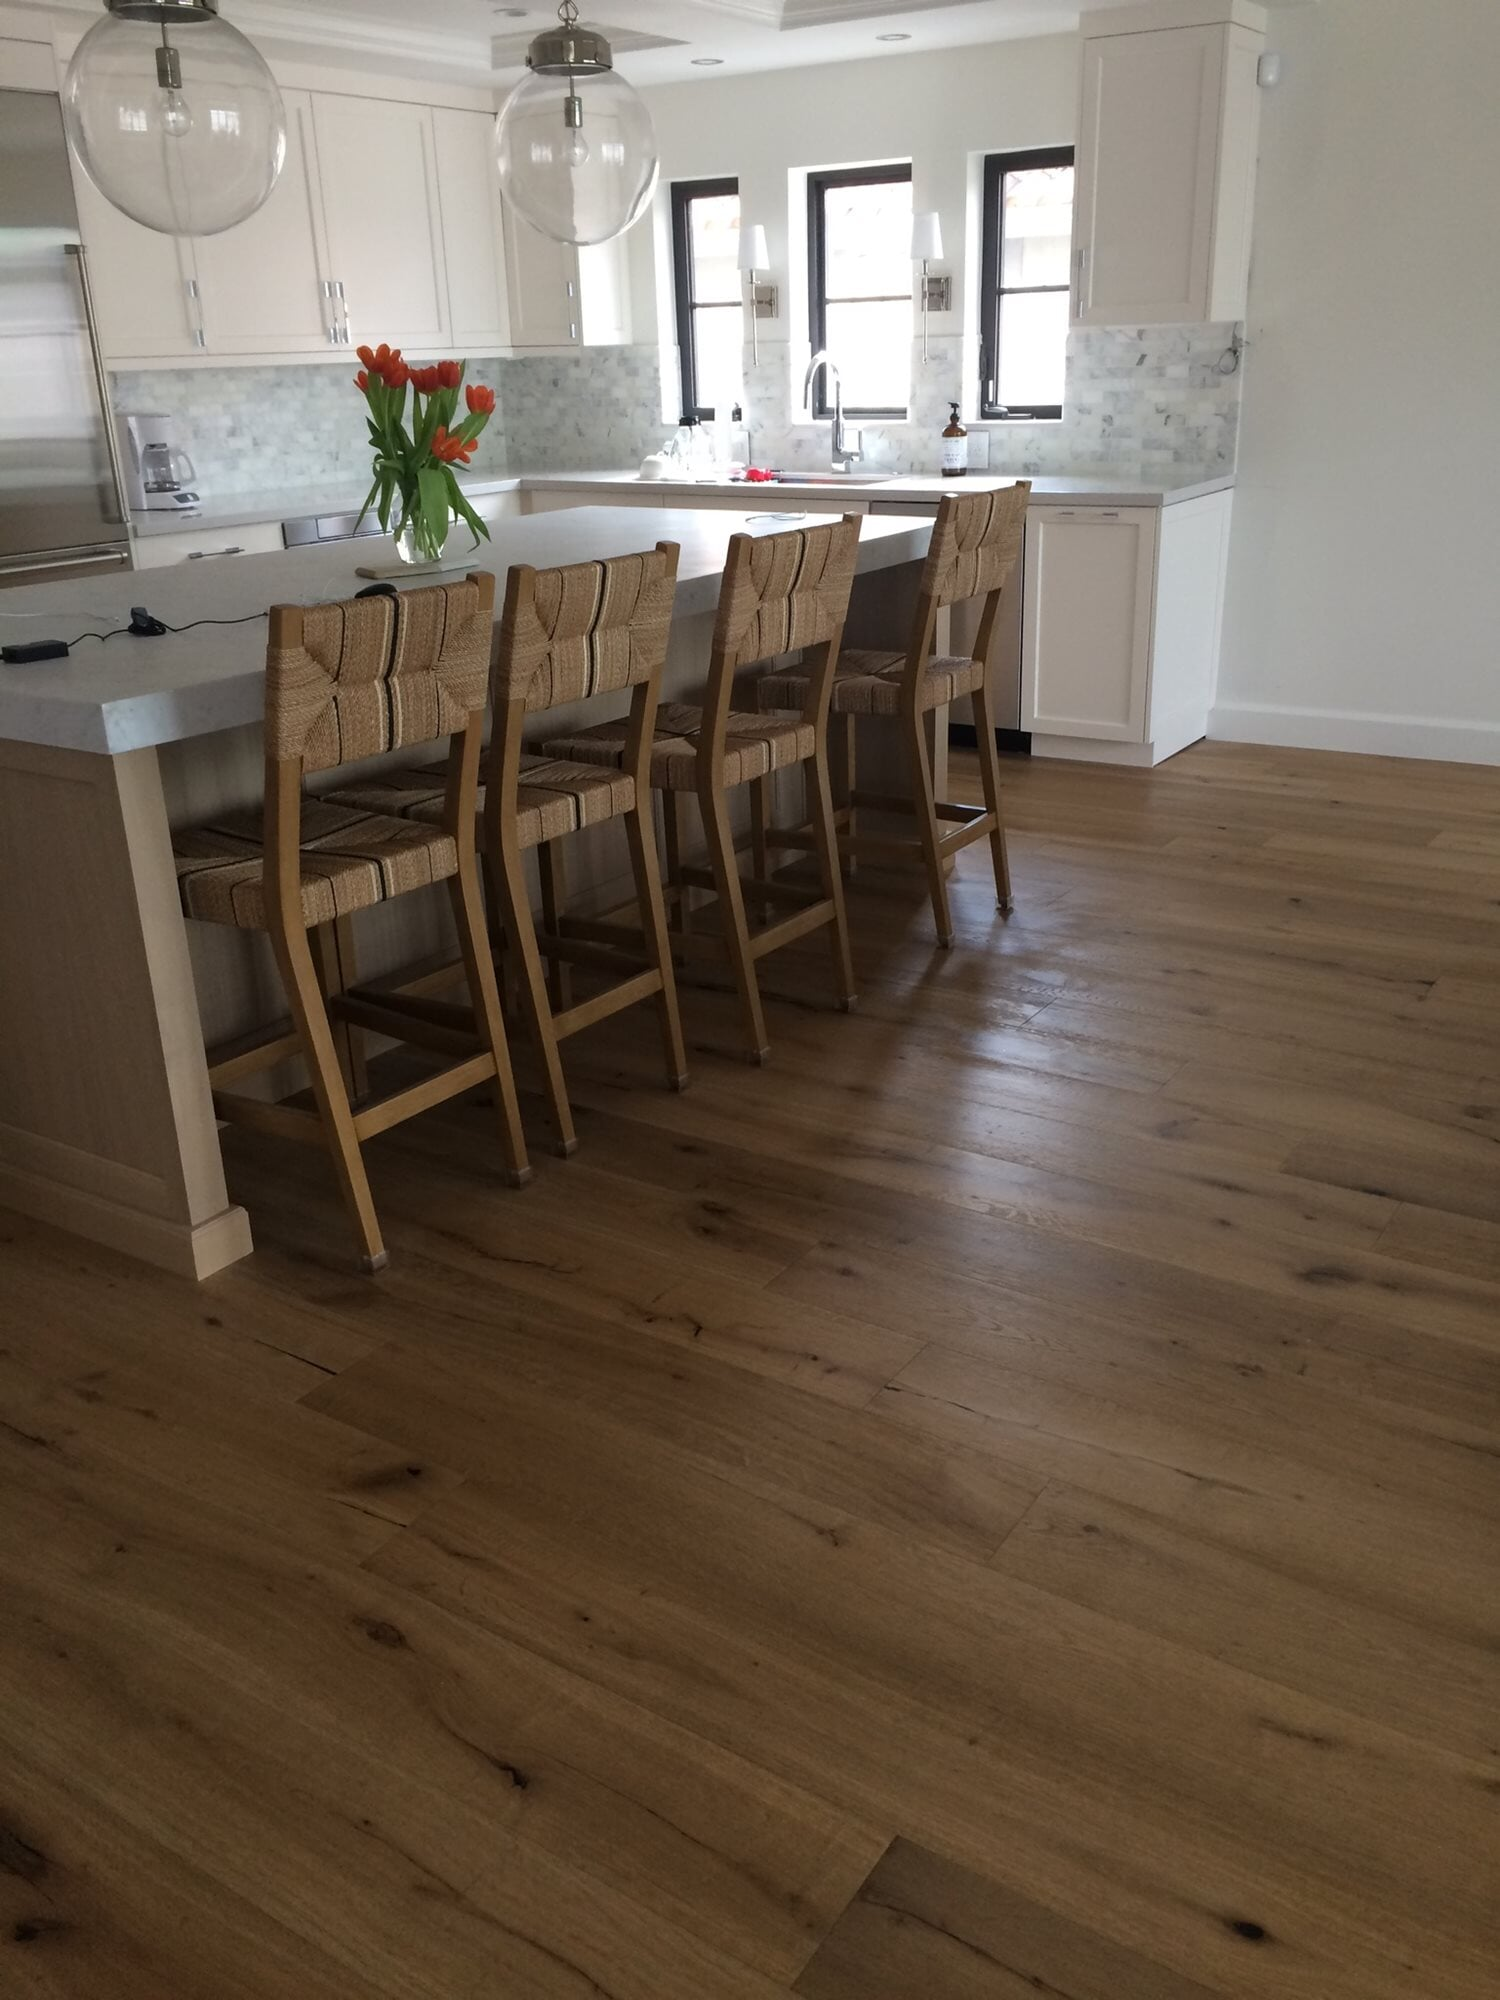 Wood look kitchen flooring in Jupiter, FL from Floors For You Kitchen & Bath